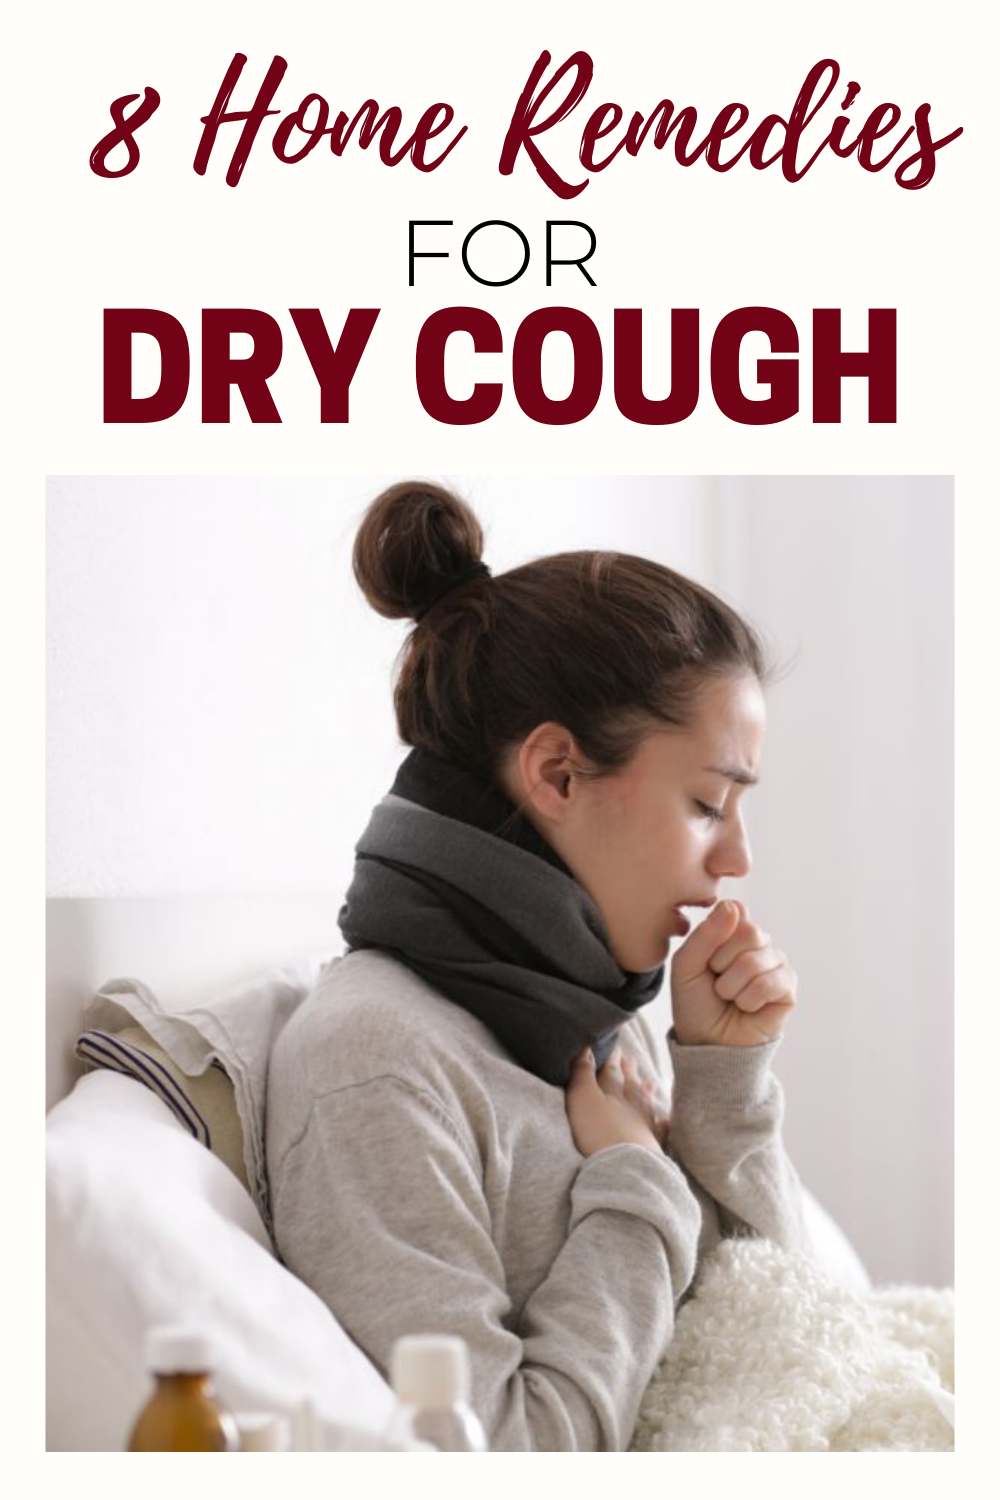 8 Home Remedies for Dry Cough in 2020 Dry cough remedies